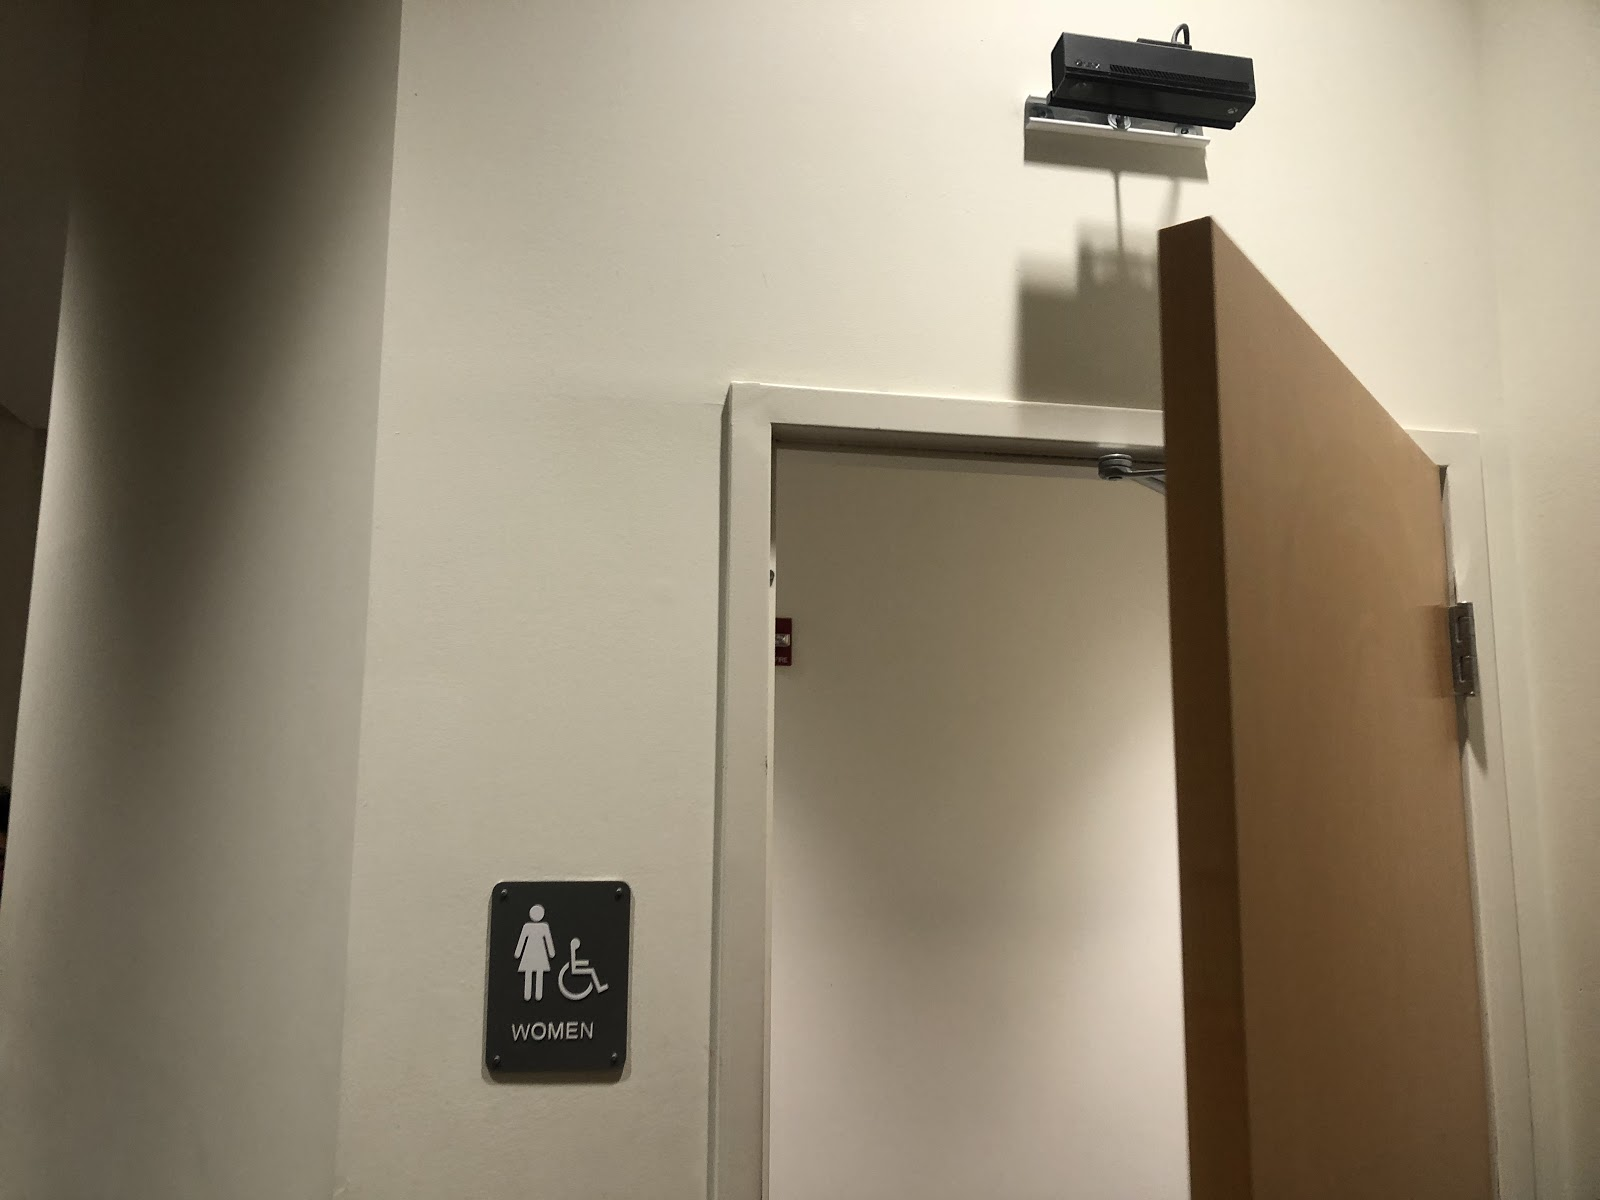 A Microsoft Kinect sensor is seen mounted above a women's bathroom in the CUC. The sensors are part of an ongoing research project.